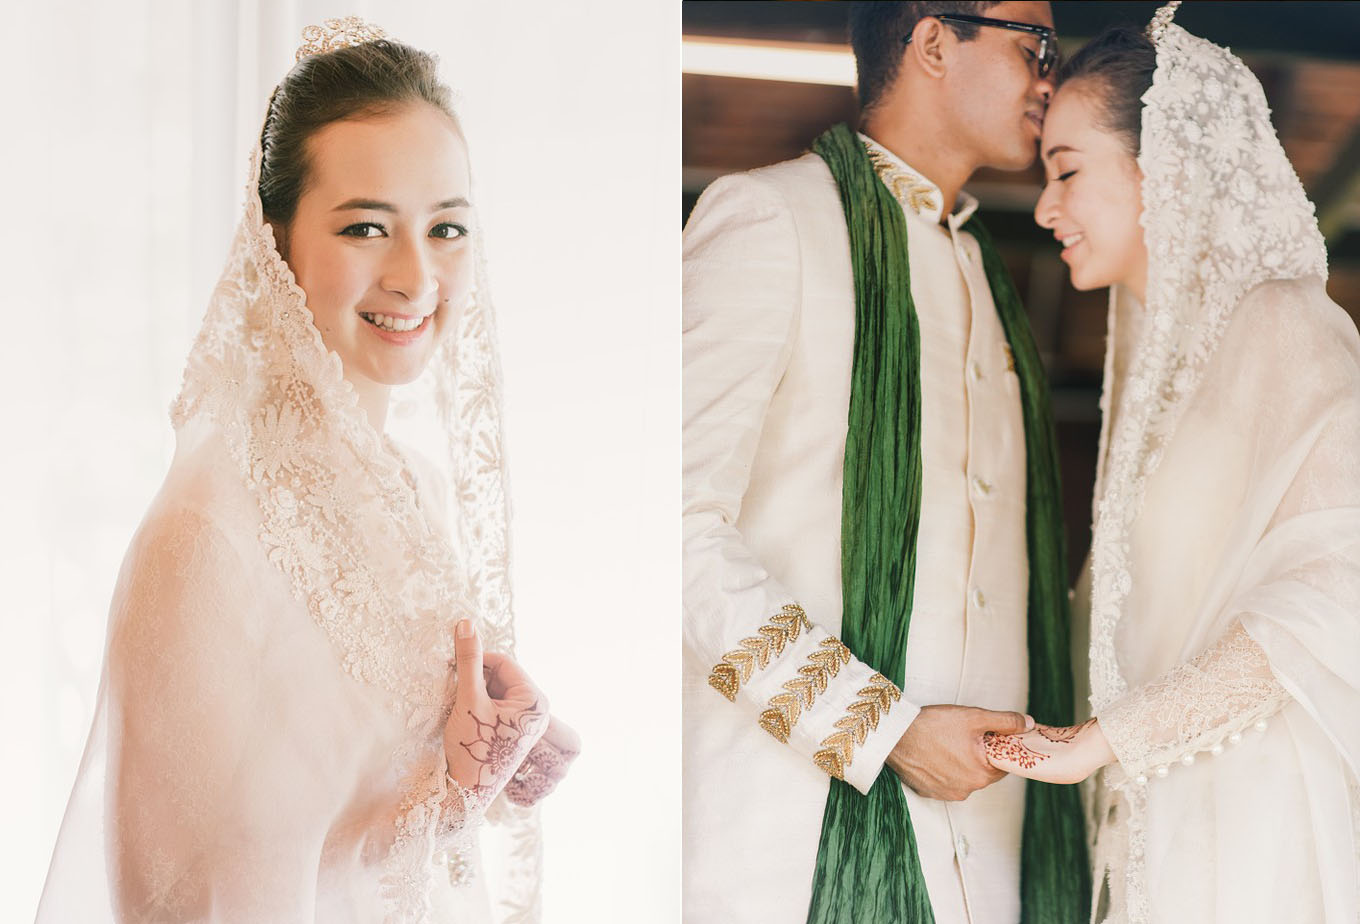 Wedding Ang Bao Tips for Different Ethnicites & Cultures Image 1